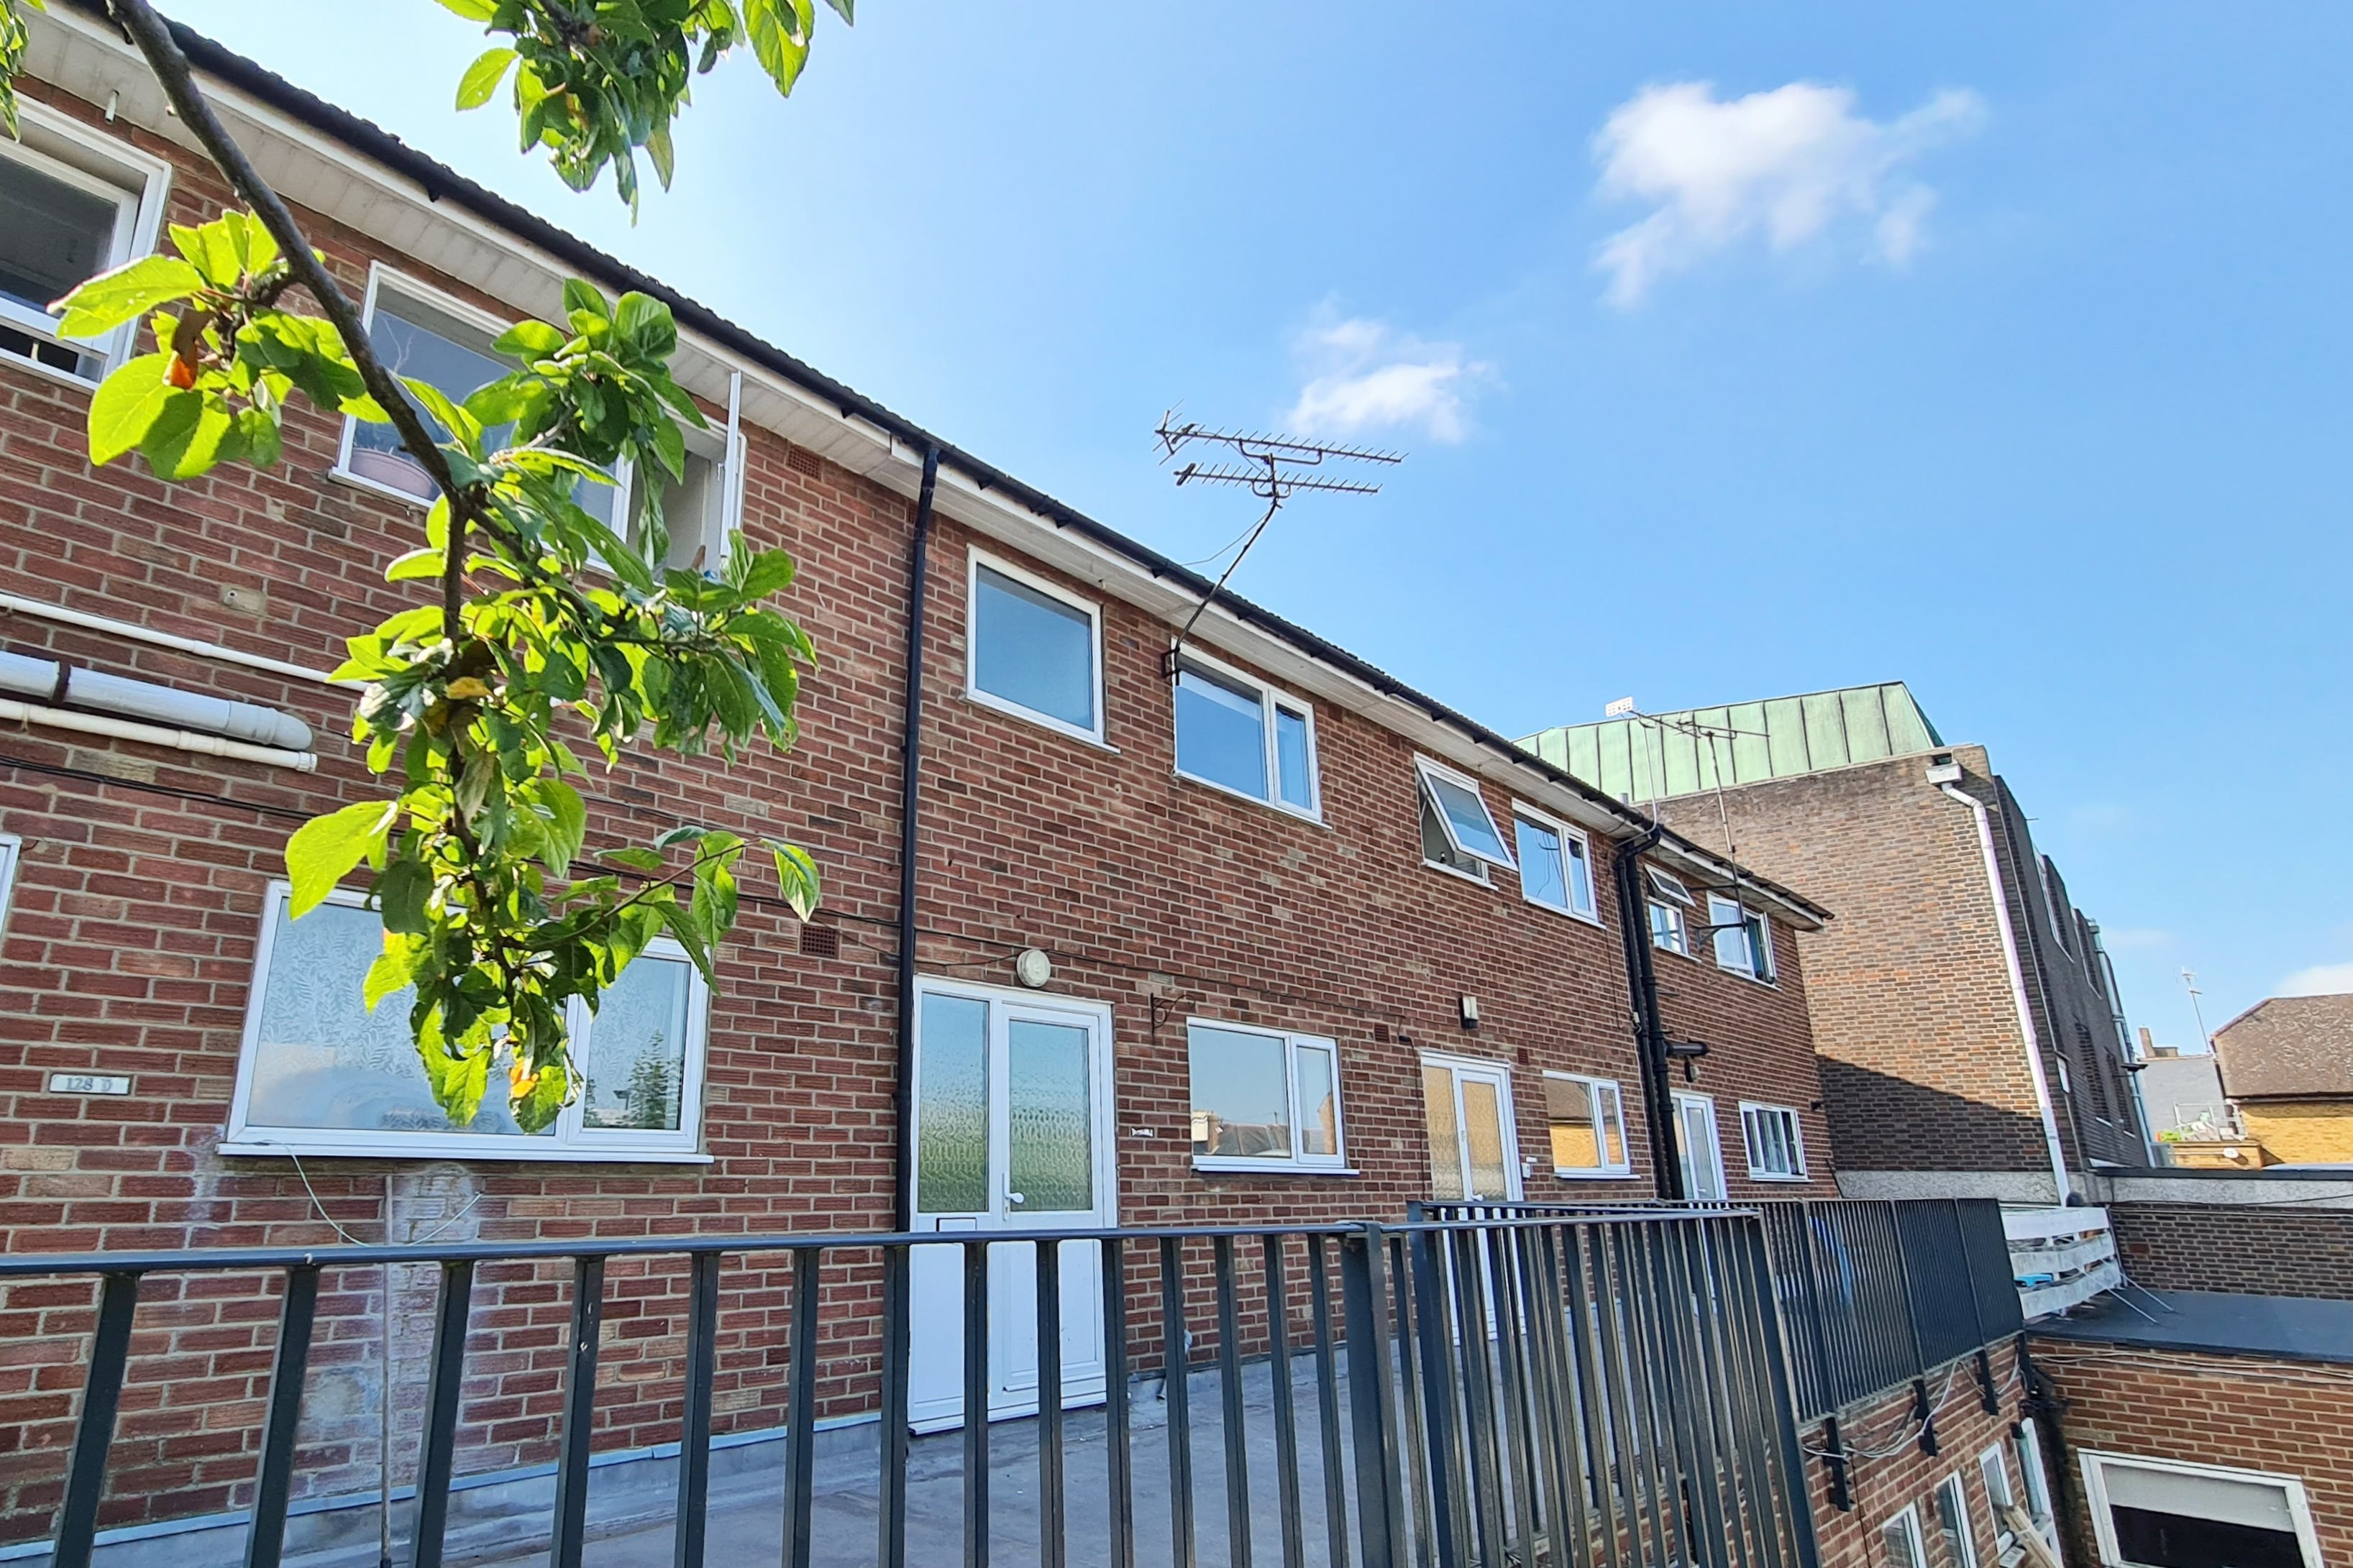 3 bed house to rent in High Street (Common Law Tenancy) (EPC Exempt), Rayleigh 0